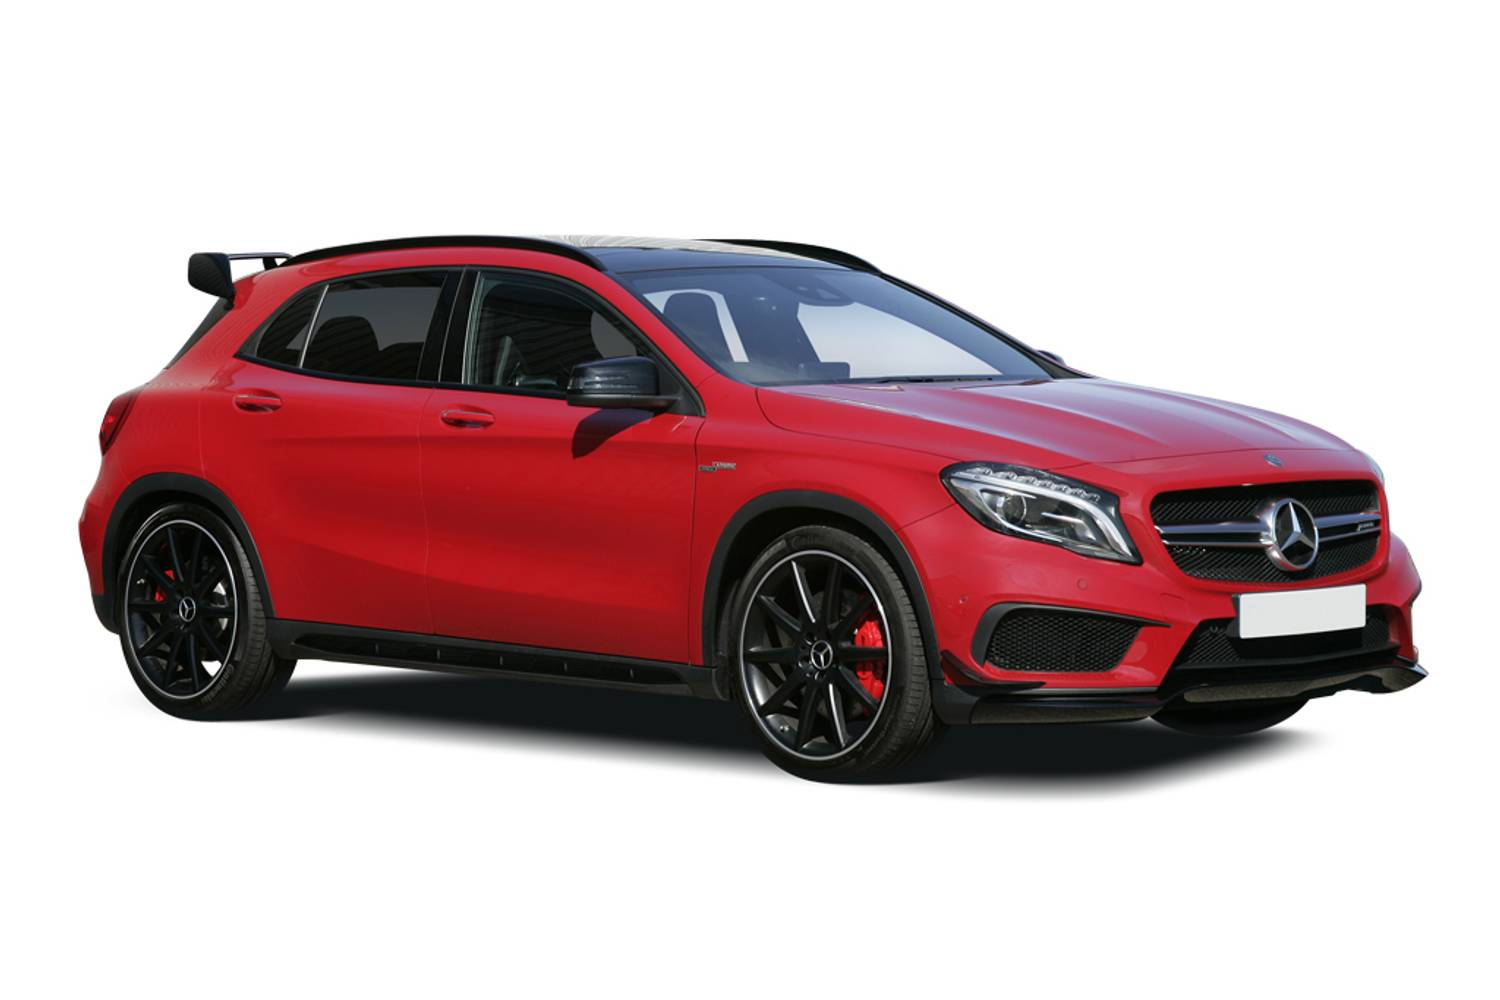 new mercedes benz gla class amg hatchback special edition gla 45 4matic yellow night edition 5. Black Bedroom Furniture Sets. Home Design Ideas